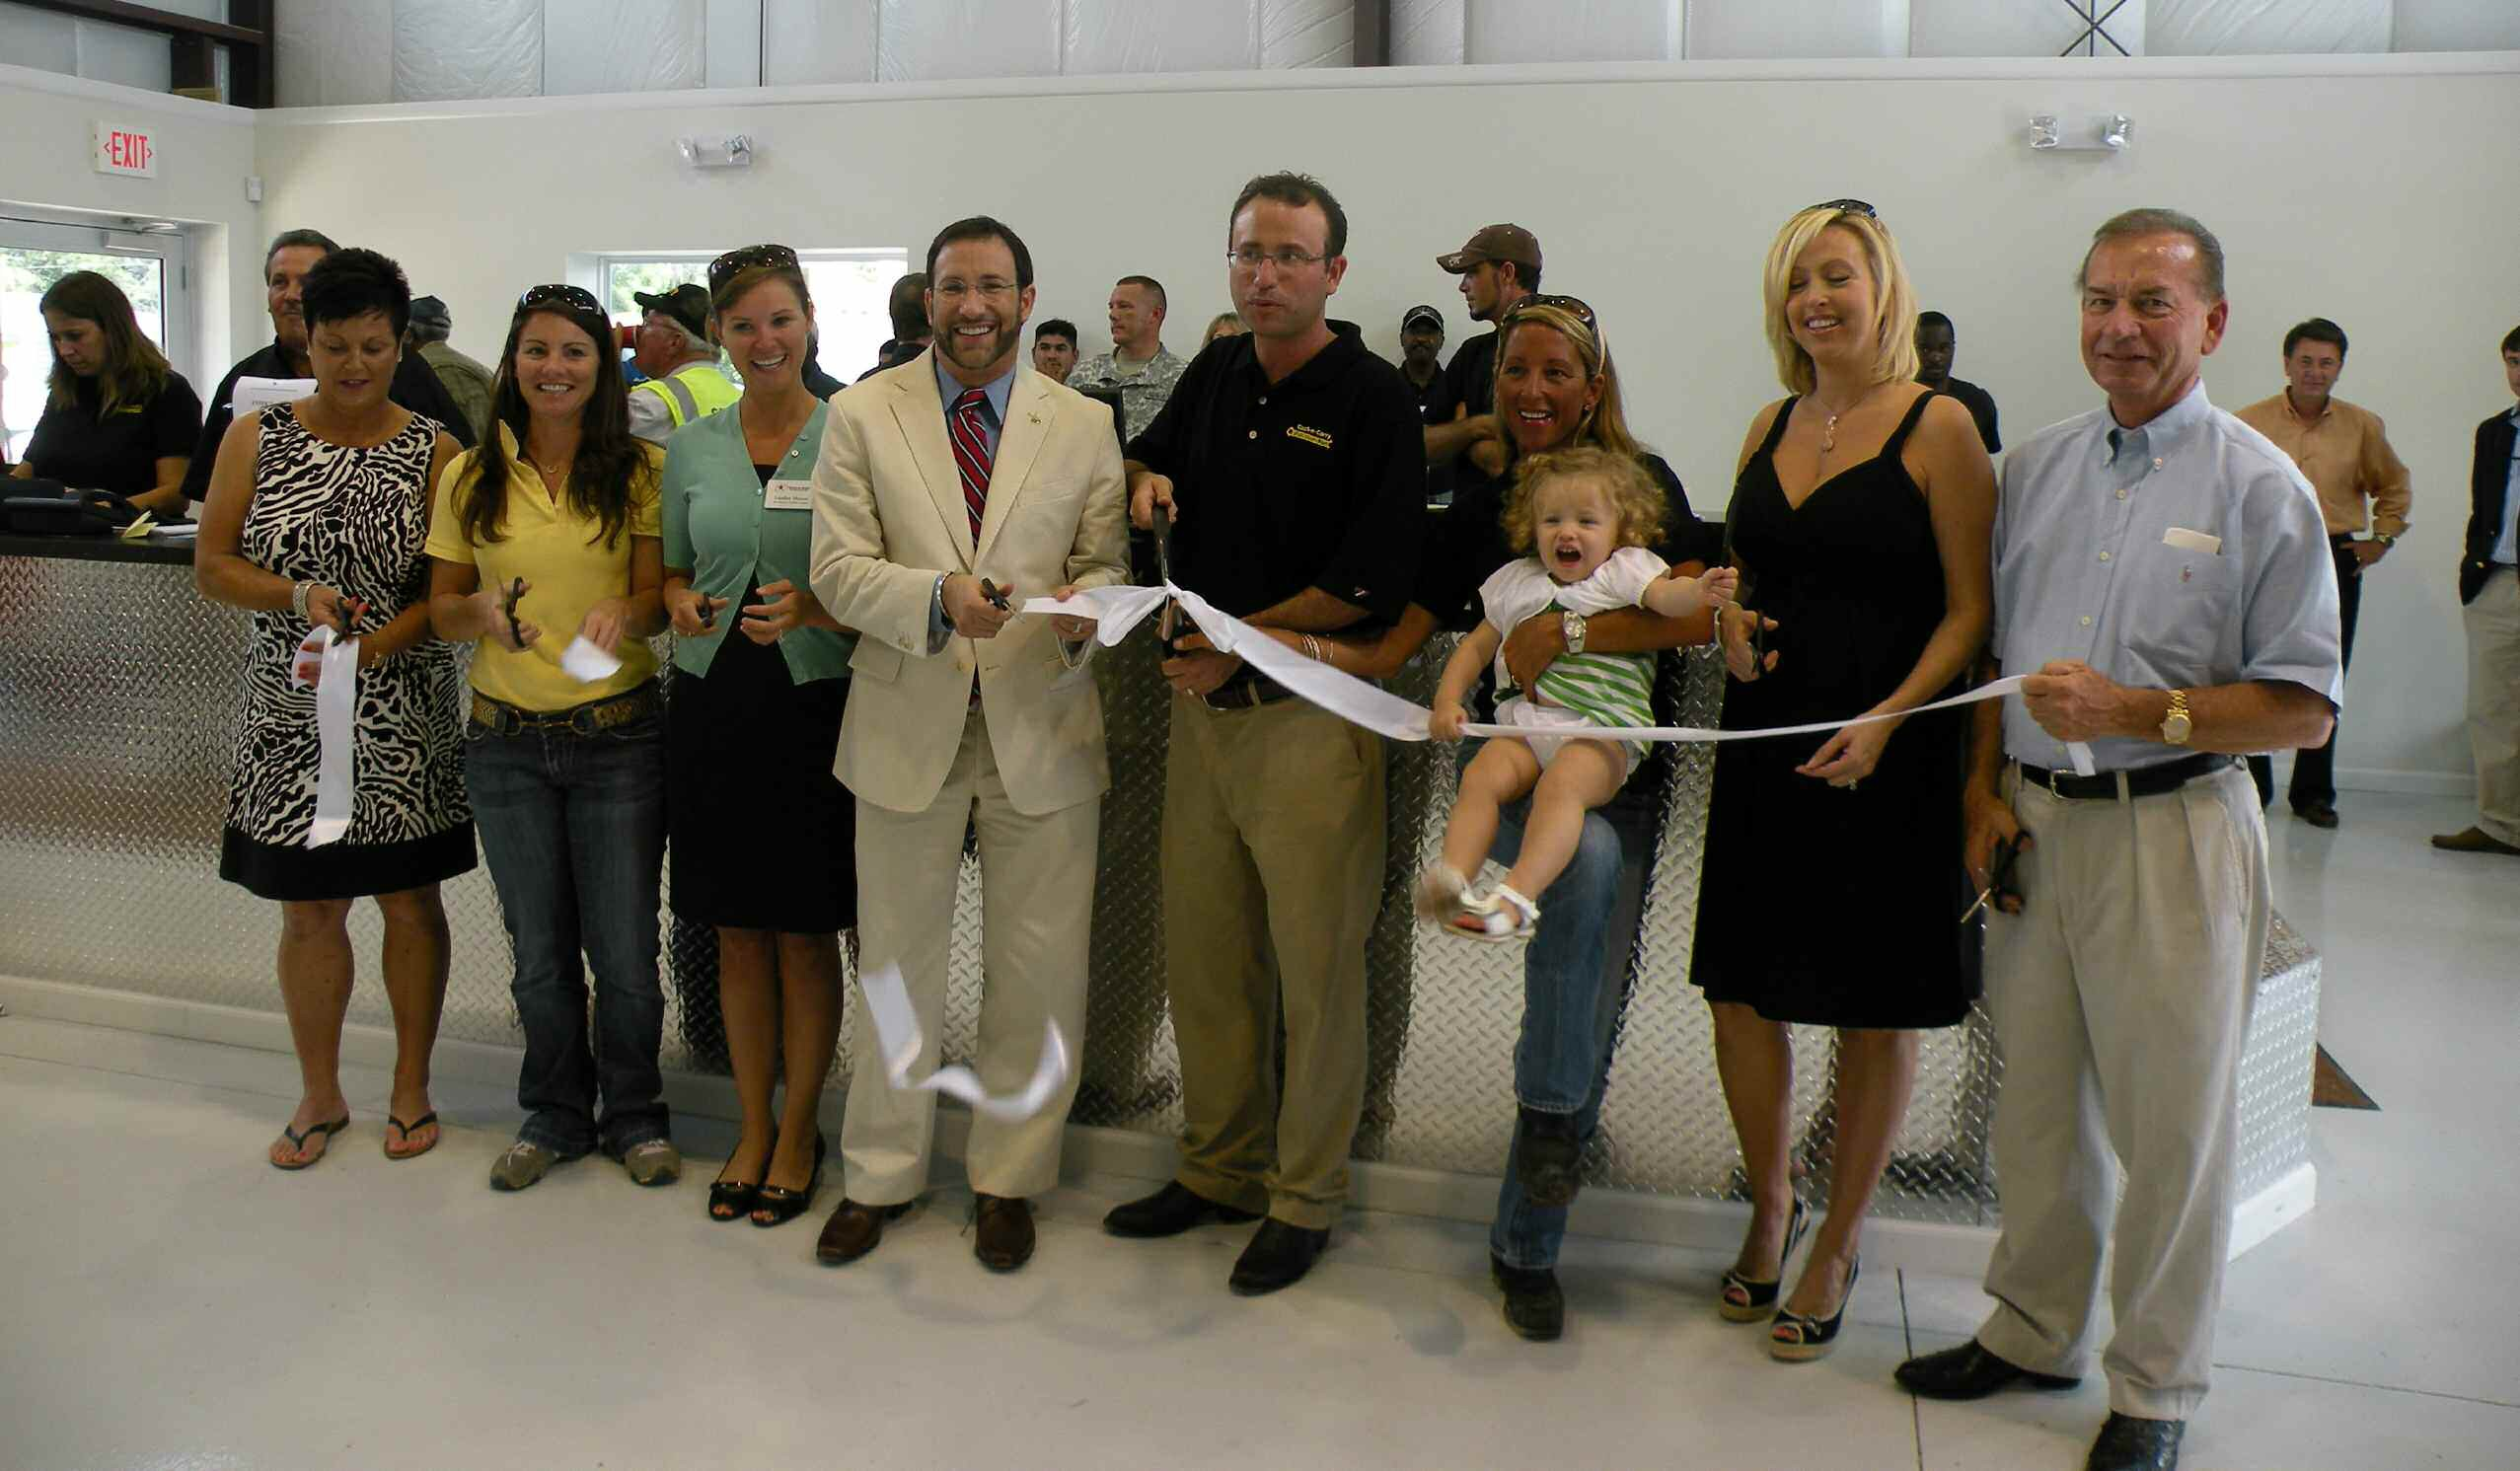 Left -Right: Terry Grainger, Ansley Grainger, Chamber Ambassador London Mainor, Alderman Jeff Felser, Kenny Grainger, Latisha Grainger along with Grace, Pam Grainger and Ken Grainger participate in ribbon cutting.